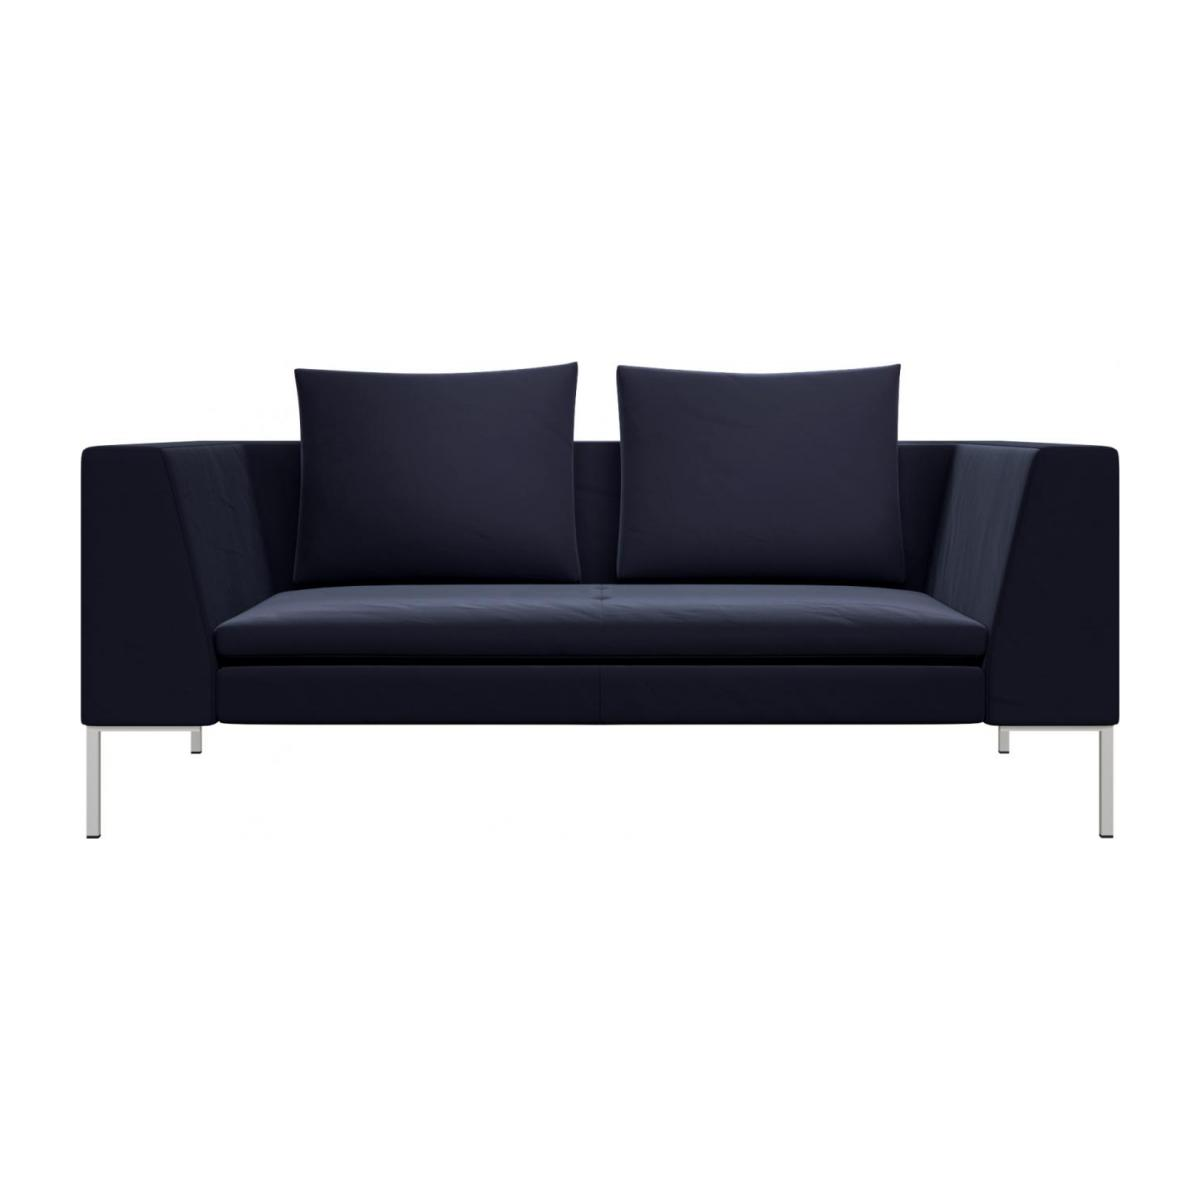 2 seater sofa in Super Velvet fabric, dark blue n°2